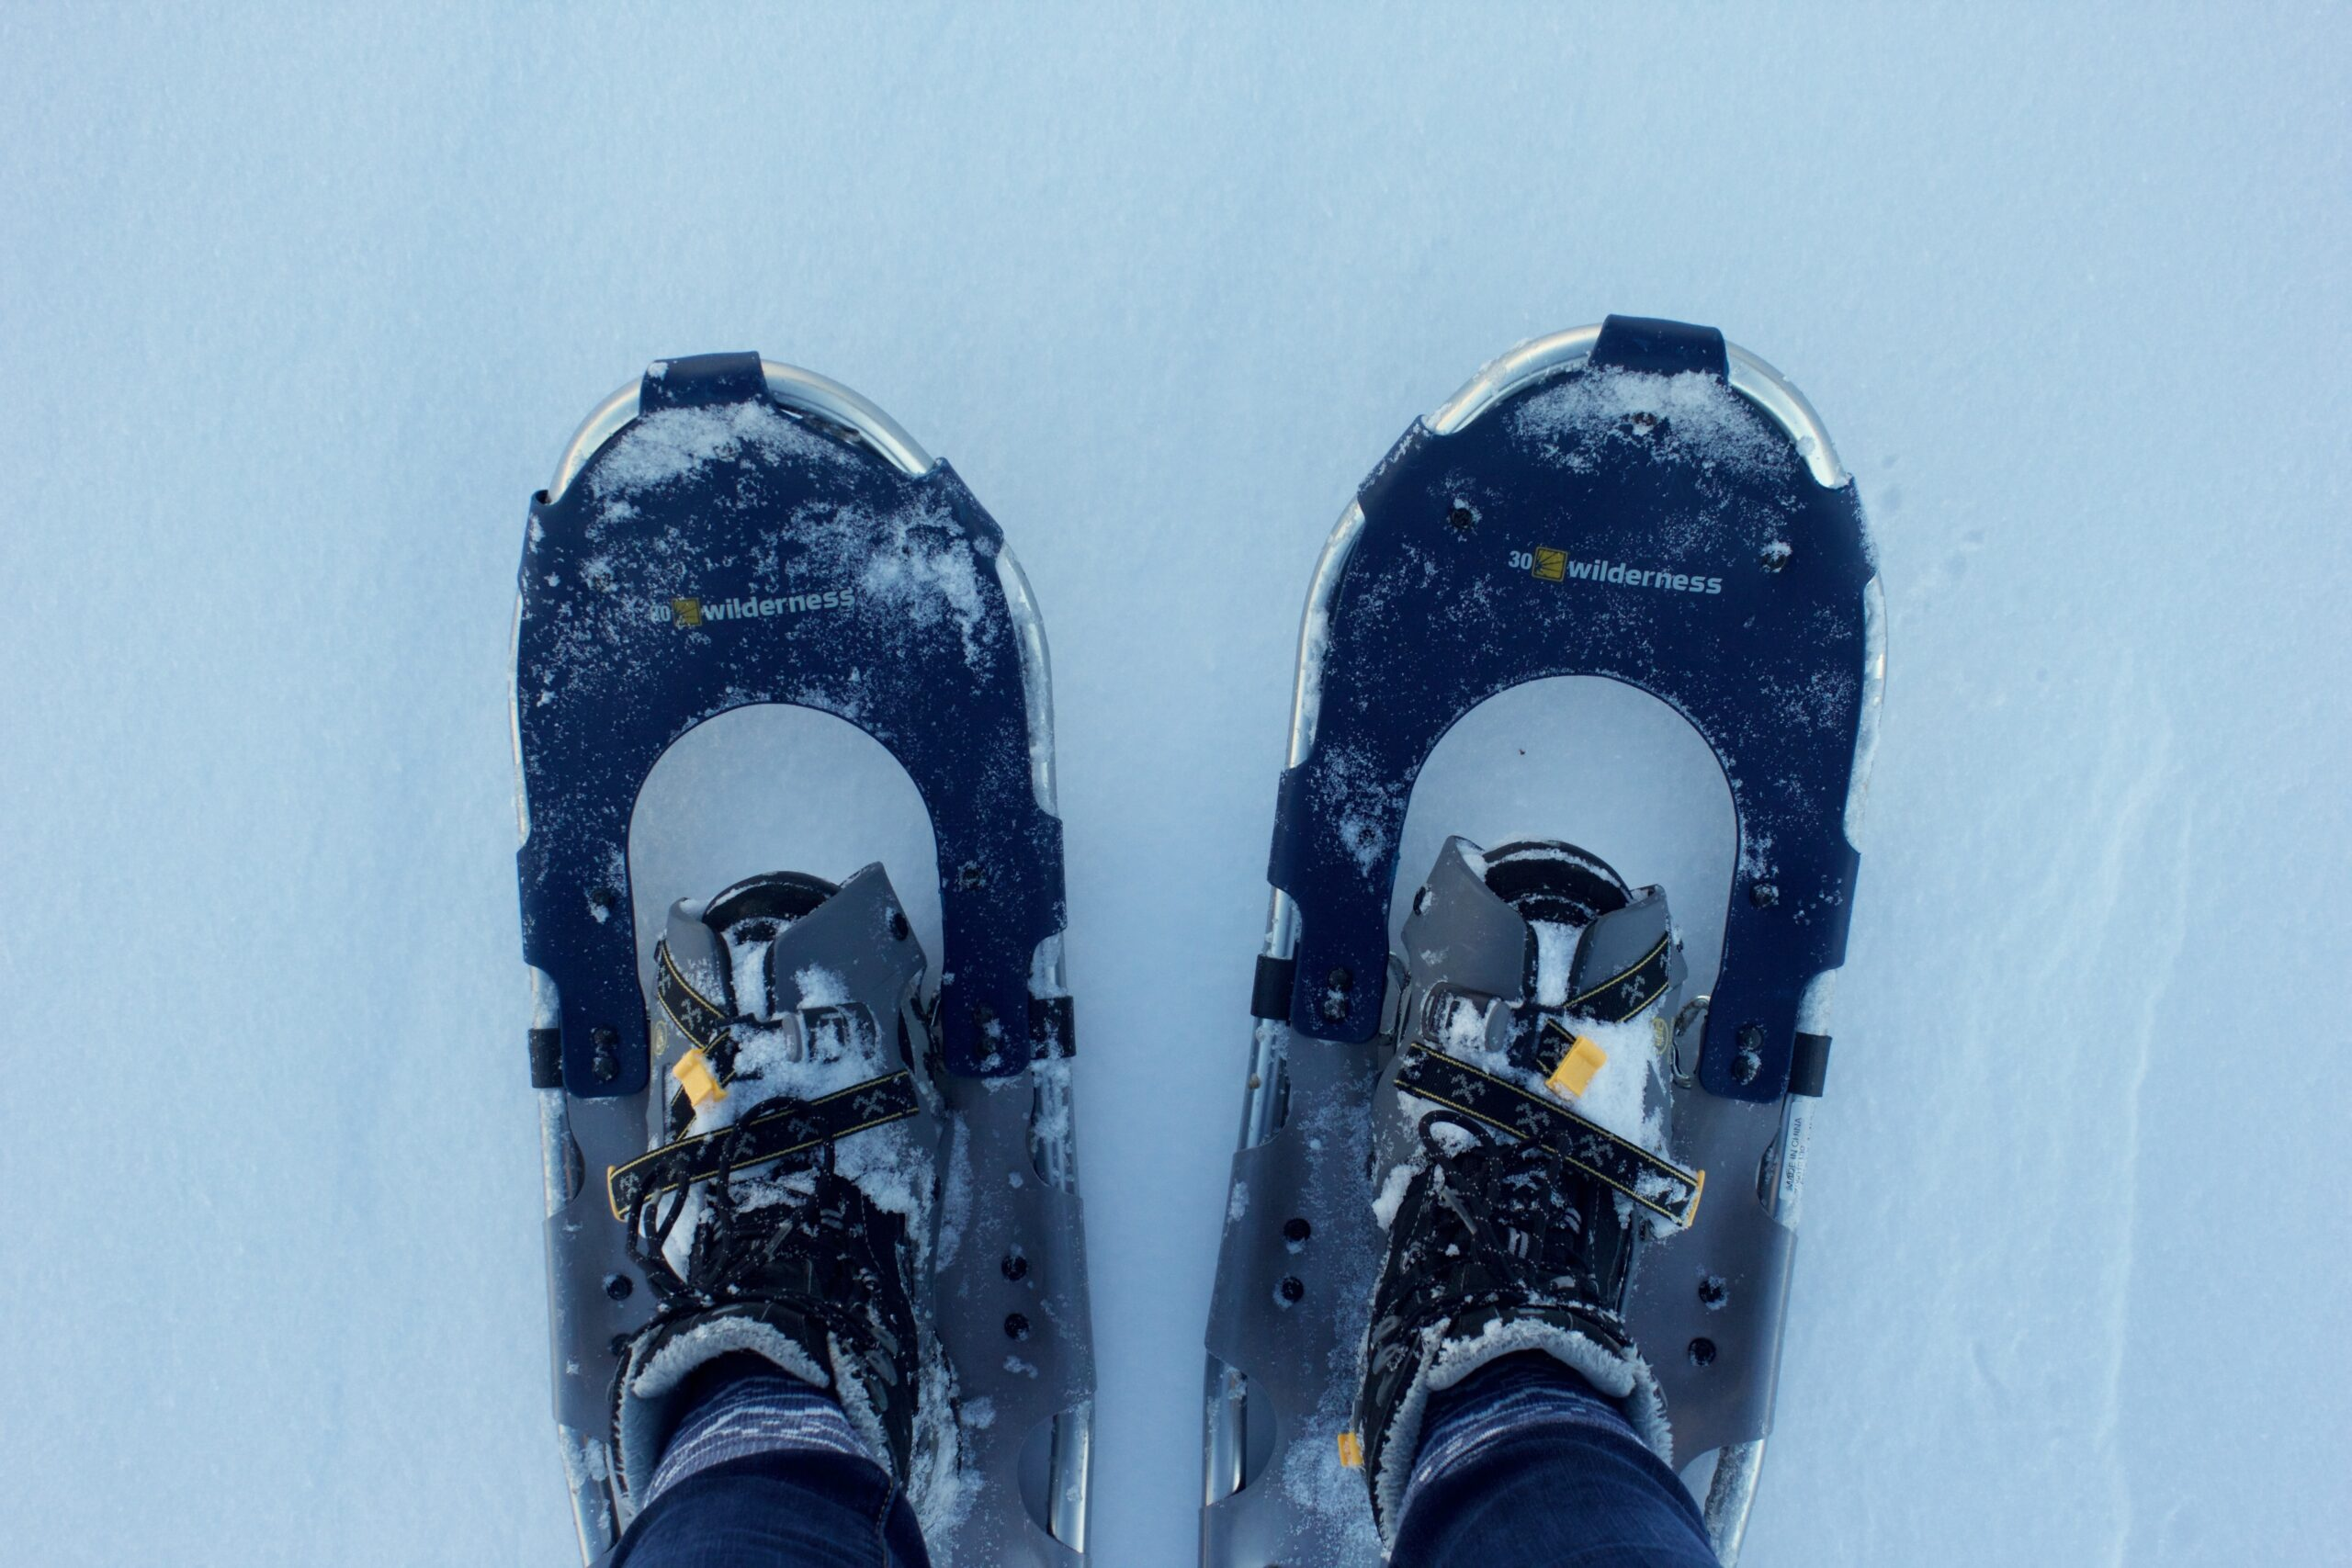 Snowshoeing Trails by the Minnesota River Valley!